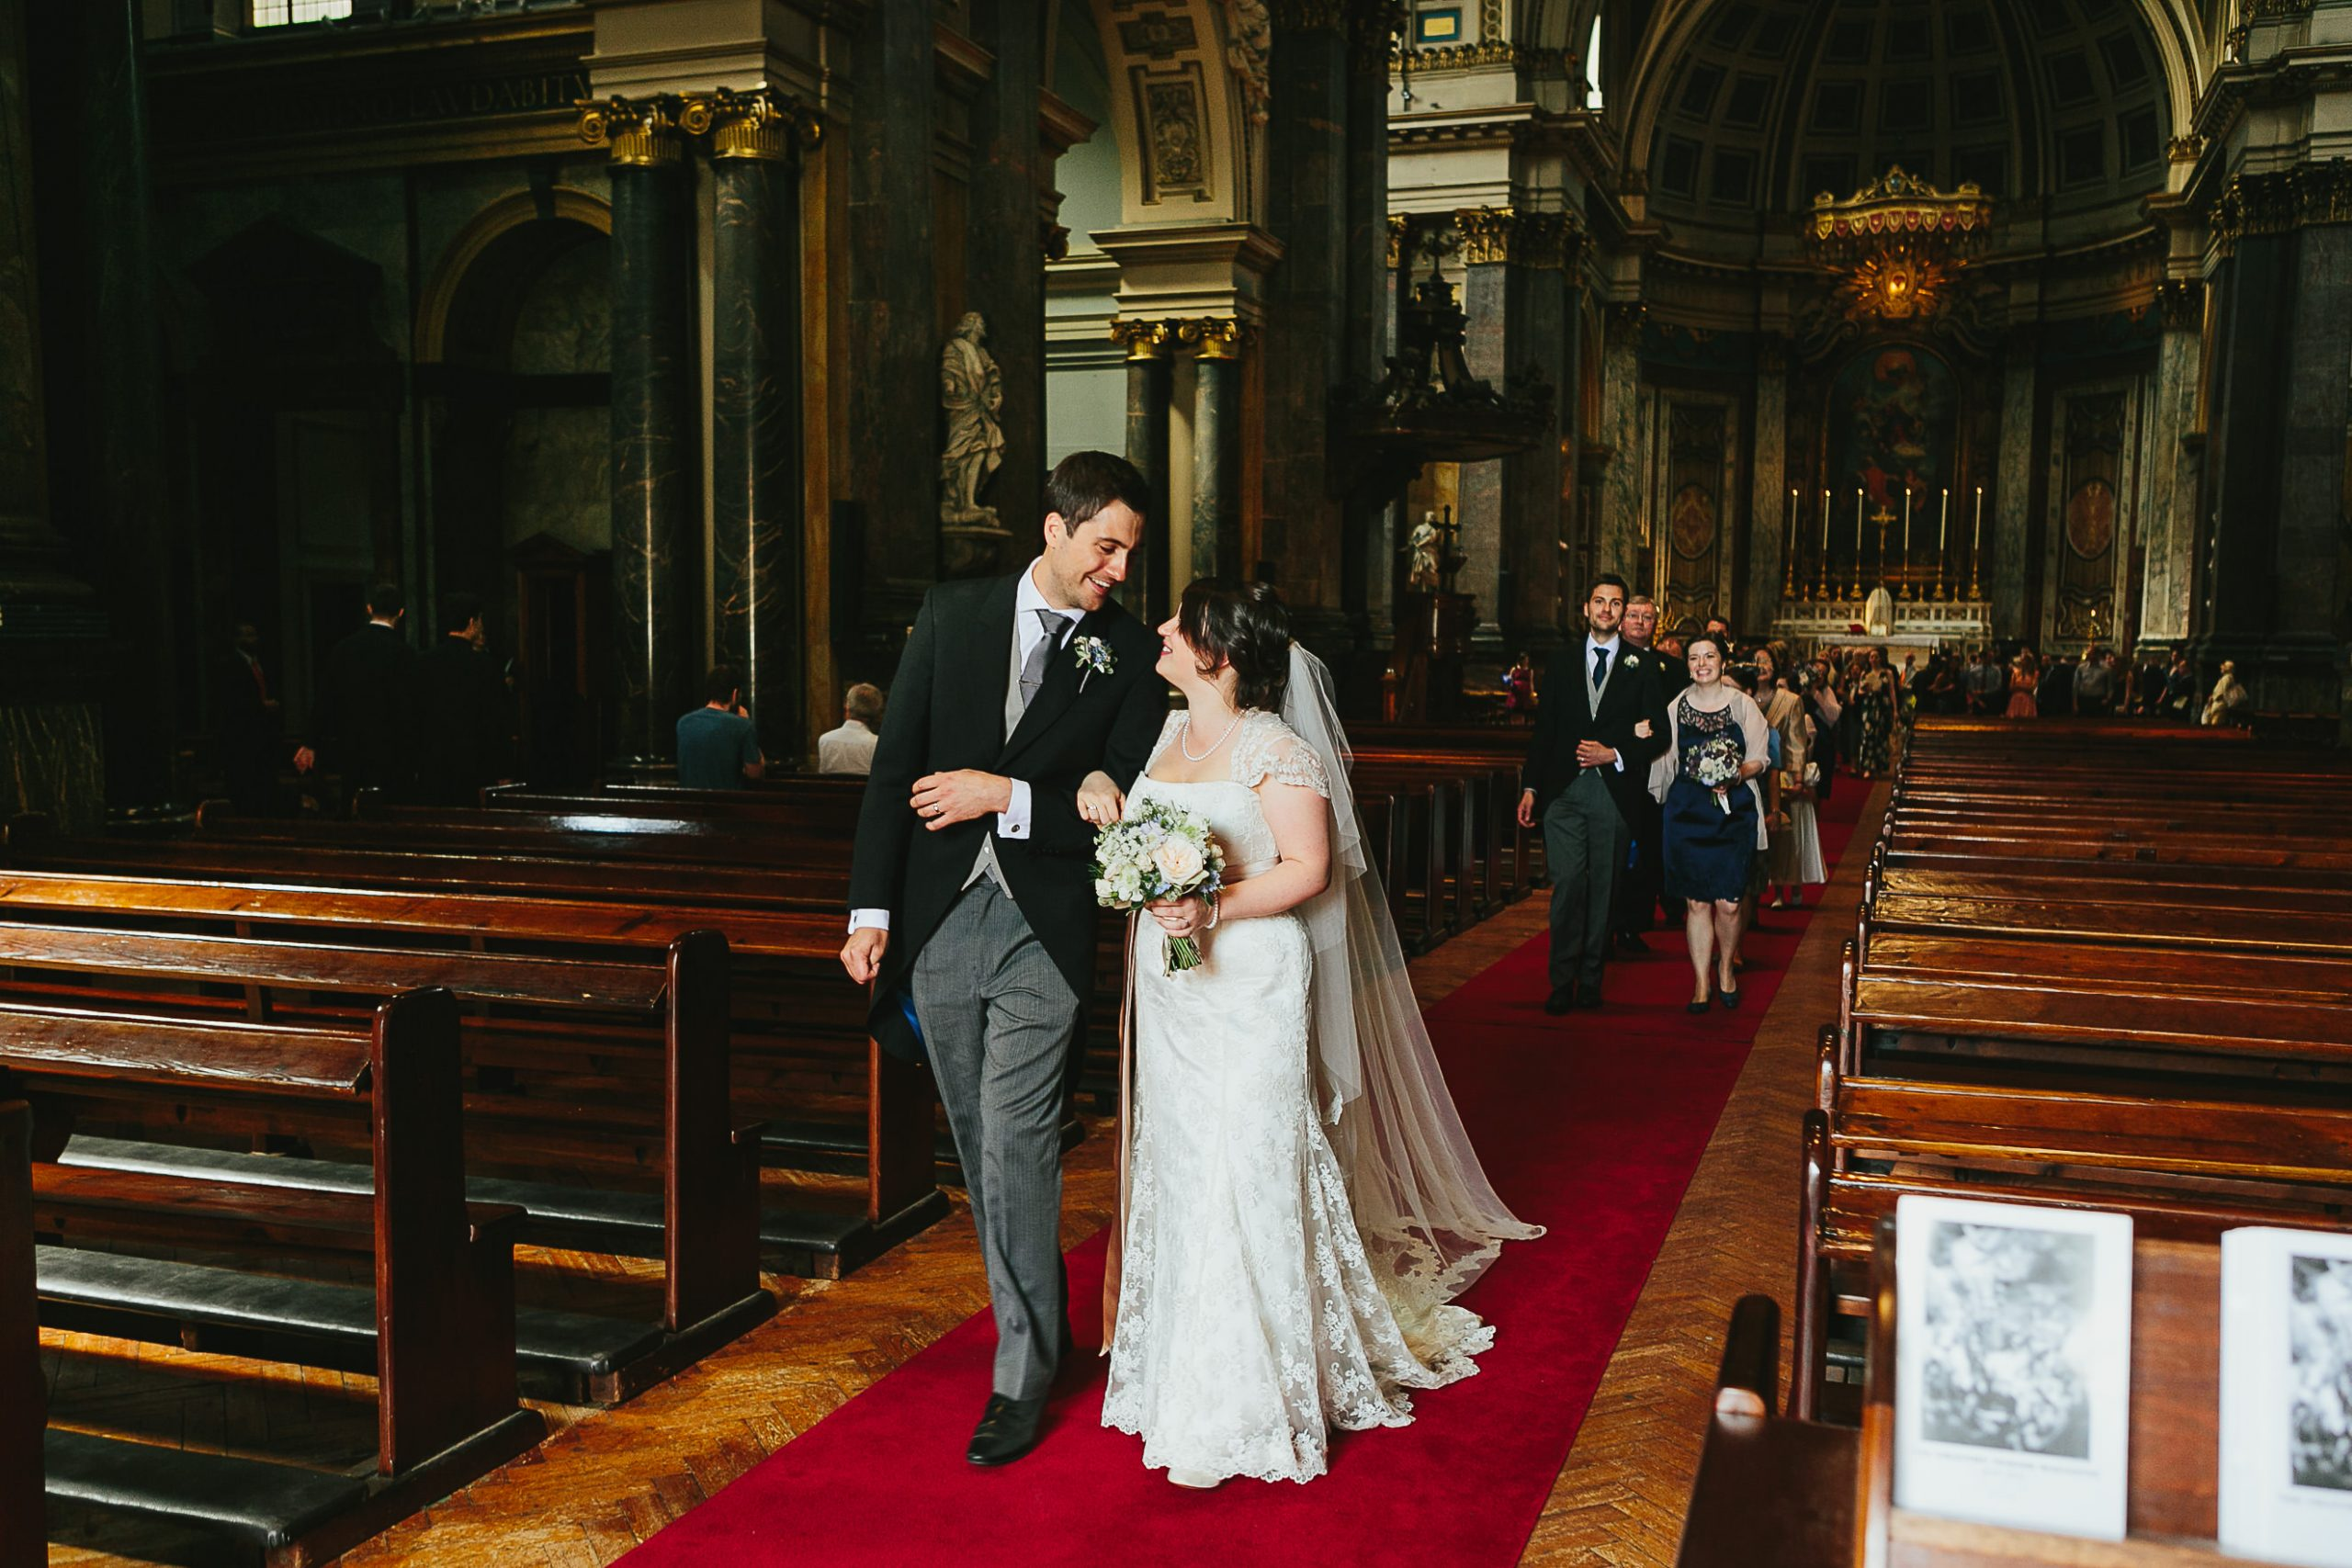 Brompton Oratory Wedding - Helen & Joe